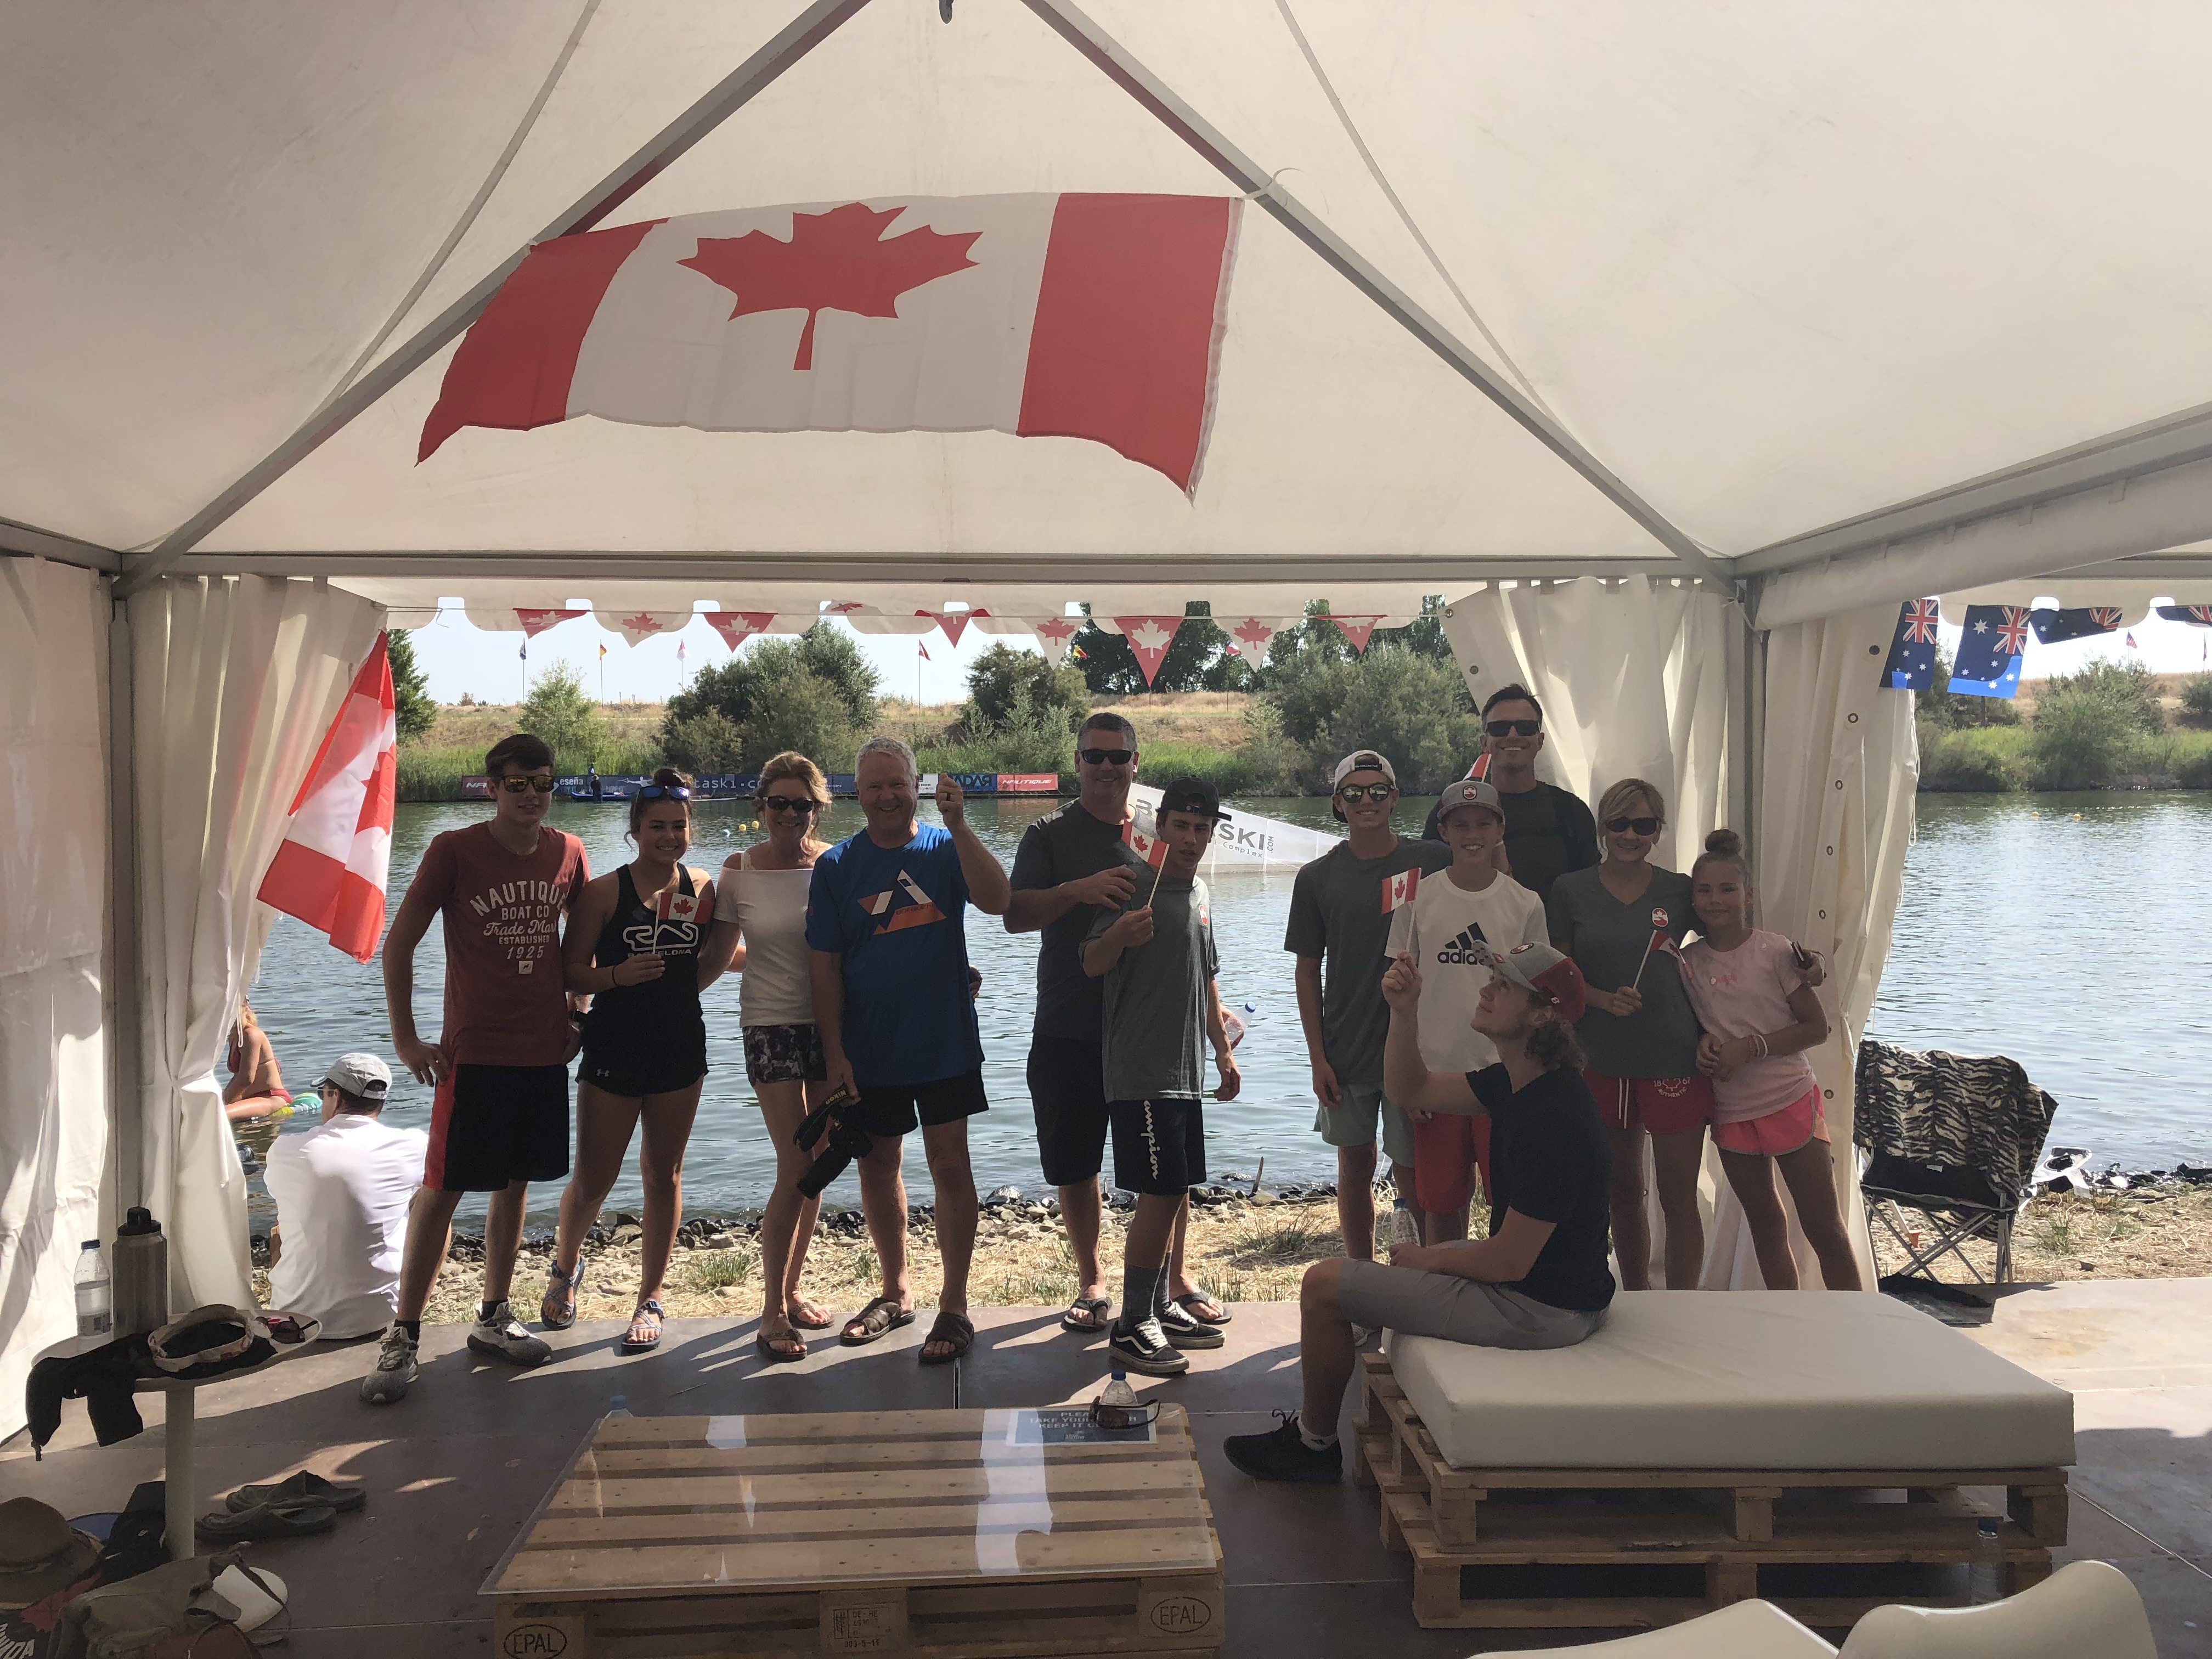 THE 2018 WORLD JUNIOR WATER SKI CHAMPIONSHIPS – OFF TO A GOOD START!